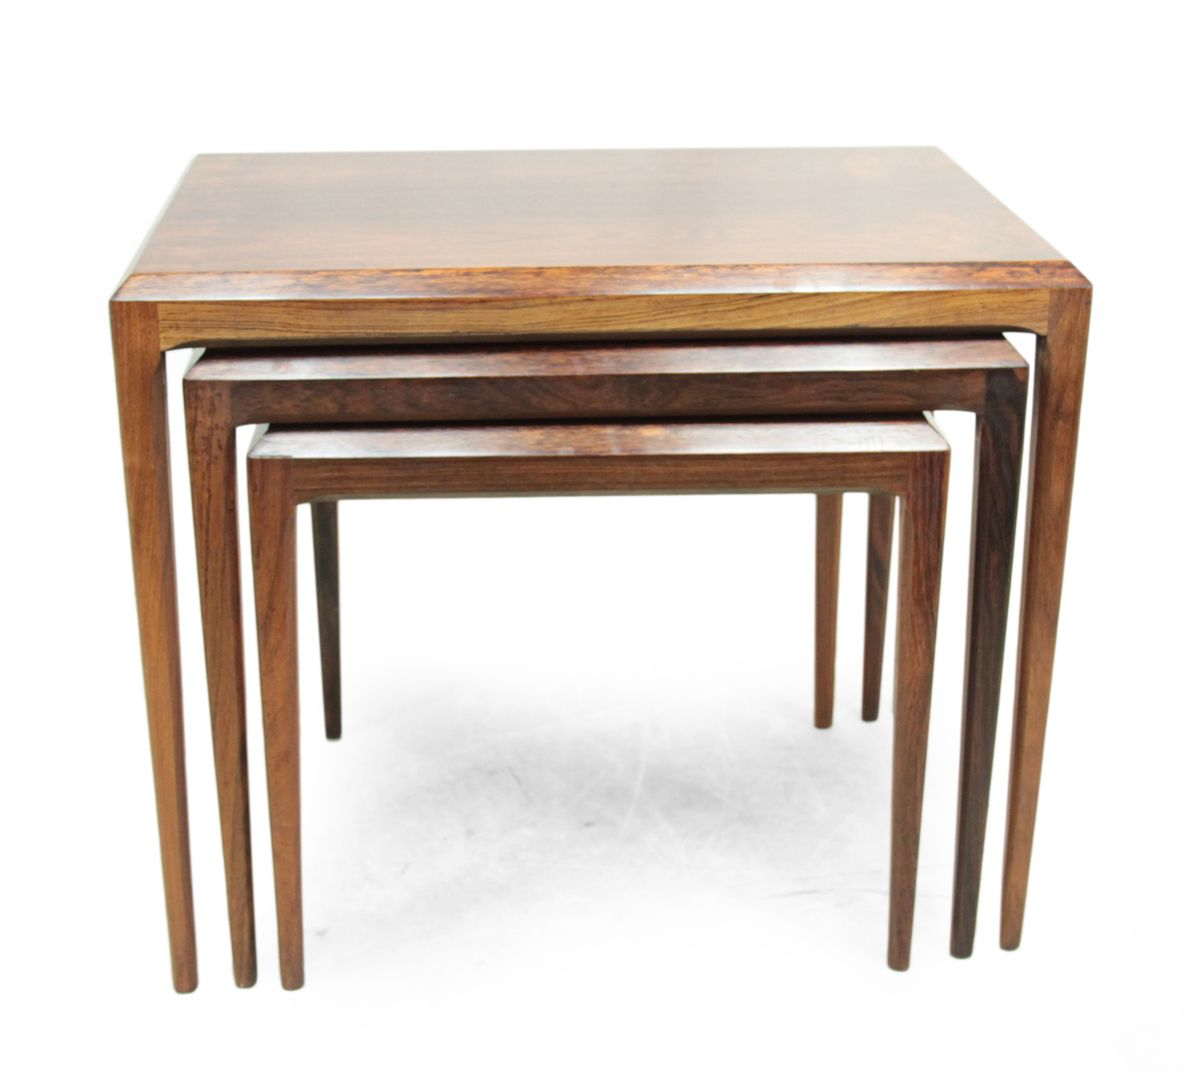 Rosewood Nesting Tables by Johannes Andersen for Silkeborg 1960